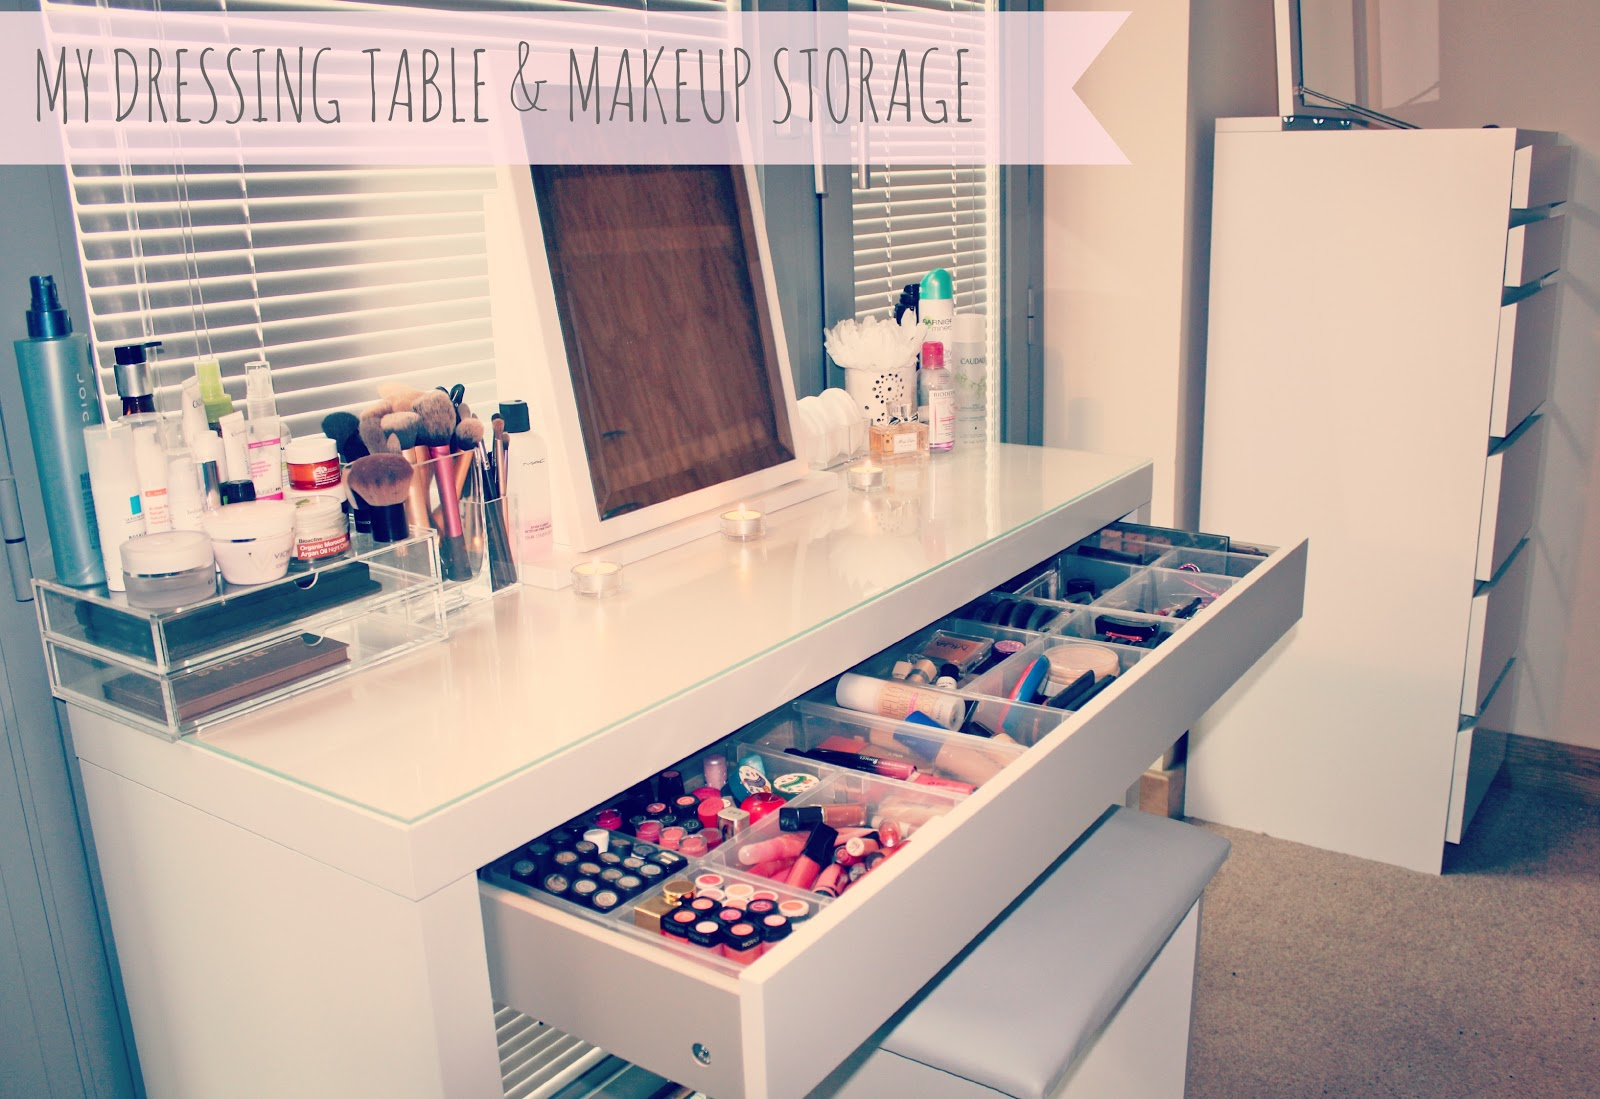 My makeup storage ikea malm dressing table sweet for Beauty table organiser